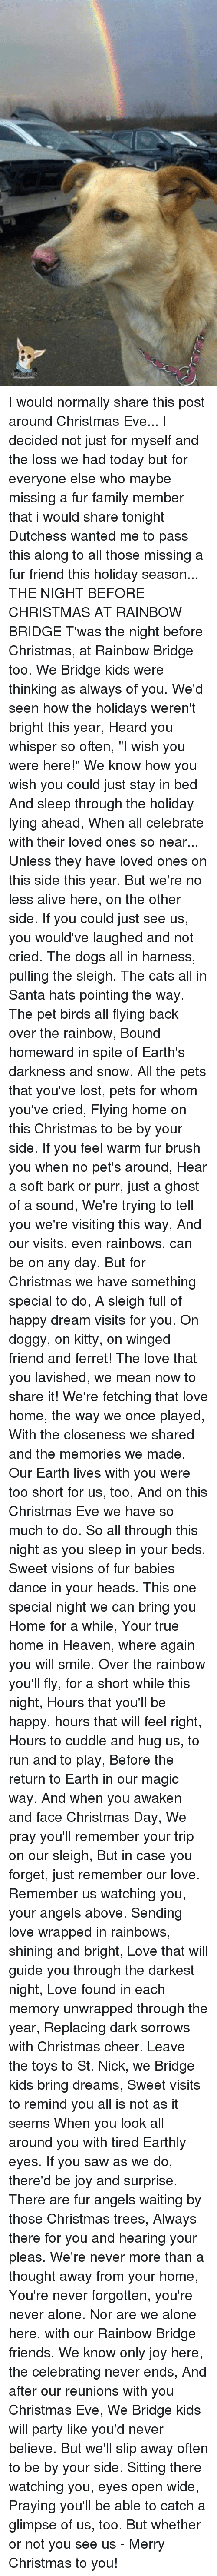 """i wish you were here: I would normally share this post around Christmas Eve... I decided not just for myself and the loss we had today but for everyone else who maybe missing a fur family member that i would share tonight   Dutchess wanted me to pass this along to all those missing a fur friend this holiday season...   THE NIGHT BEFORE CHRISTMAS  AT RAINBOW BRIDGE   T'was the night before Christmas, at Rainbow Bridge too.  We Bridge kids were thinking as always of you.  We'd seen how the holidays weren't bright this year,  Heard you whisper so often, """"I wish you were here!""""   We know how you wish you could just stay in bed  And sleep through the holiday lying ahead,  When all celebrate with their loved ones so near...  Unless they have loved ones on this side this year.   But we're no less alive here, on the other side.  If you could just see us, you would've laughed and not cried.  The dogs all in harness, pulling the sleigh.  The cats all in Santa hats pointing the way.   The pet birds all flying back over the rainbow,  Bound homeward in spite of Earth's darkness and snow.  All the pets that you've lost, pets for whom you've cried,  Flying home on this Christmas to be by your side.   If you feel warm fur brush you when no pet's around,  Hear a soft bark or purr, just a ghost of a sound,  We're trying to tell you we're visiting this way,  And our visits, even rainbows, can be on any day.   But for Christmas we have something special to do,  A sleigh full of happy dream visits for you.  On doggy, on kitty, on winged friend and ferret!  The love that you lavished, we mean now to share it!   We're fetching that love home, the way we once played,  With the closeness we shared and the memories we made.  Our Earth lives with you were too short for us, too,  And on this Christmas Eve we have so much to do.   So all through this night as you sleep in your beds,  Sweet visions of fur babies dance in your heads.  This one special night we can bring you Home for a while,  You"""